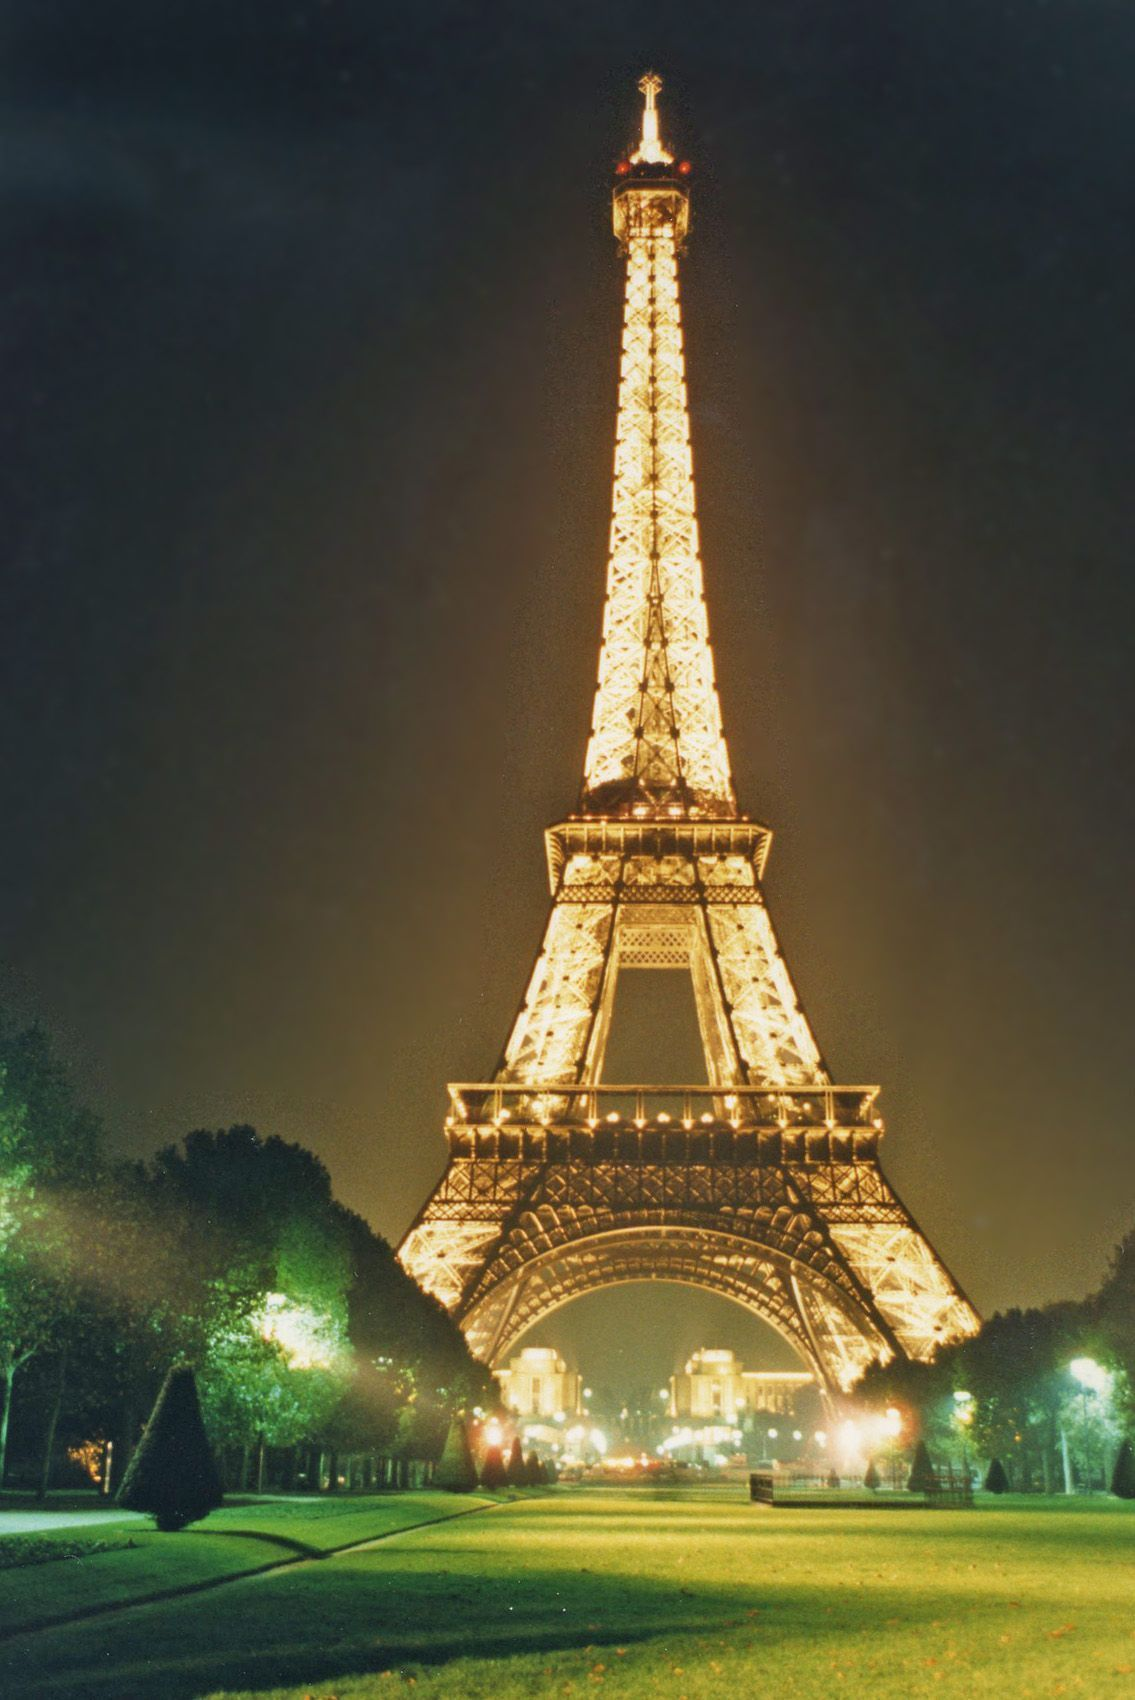 Eiffel Tower, 4K Ultra HD Wallpapers For Free – Wallpapers and ...